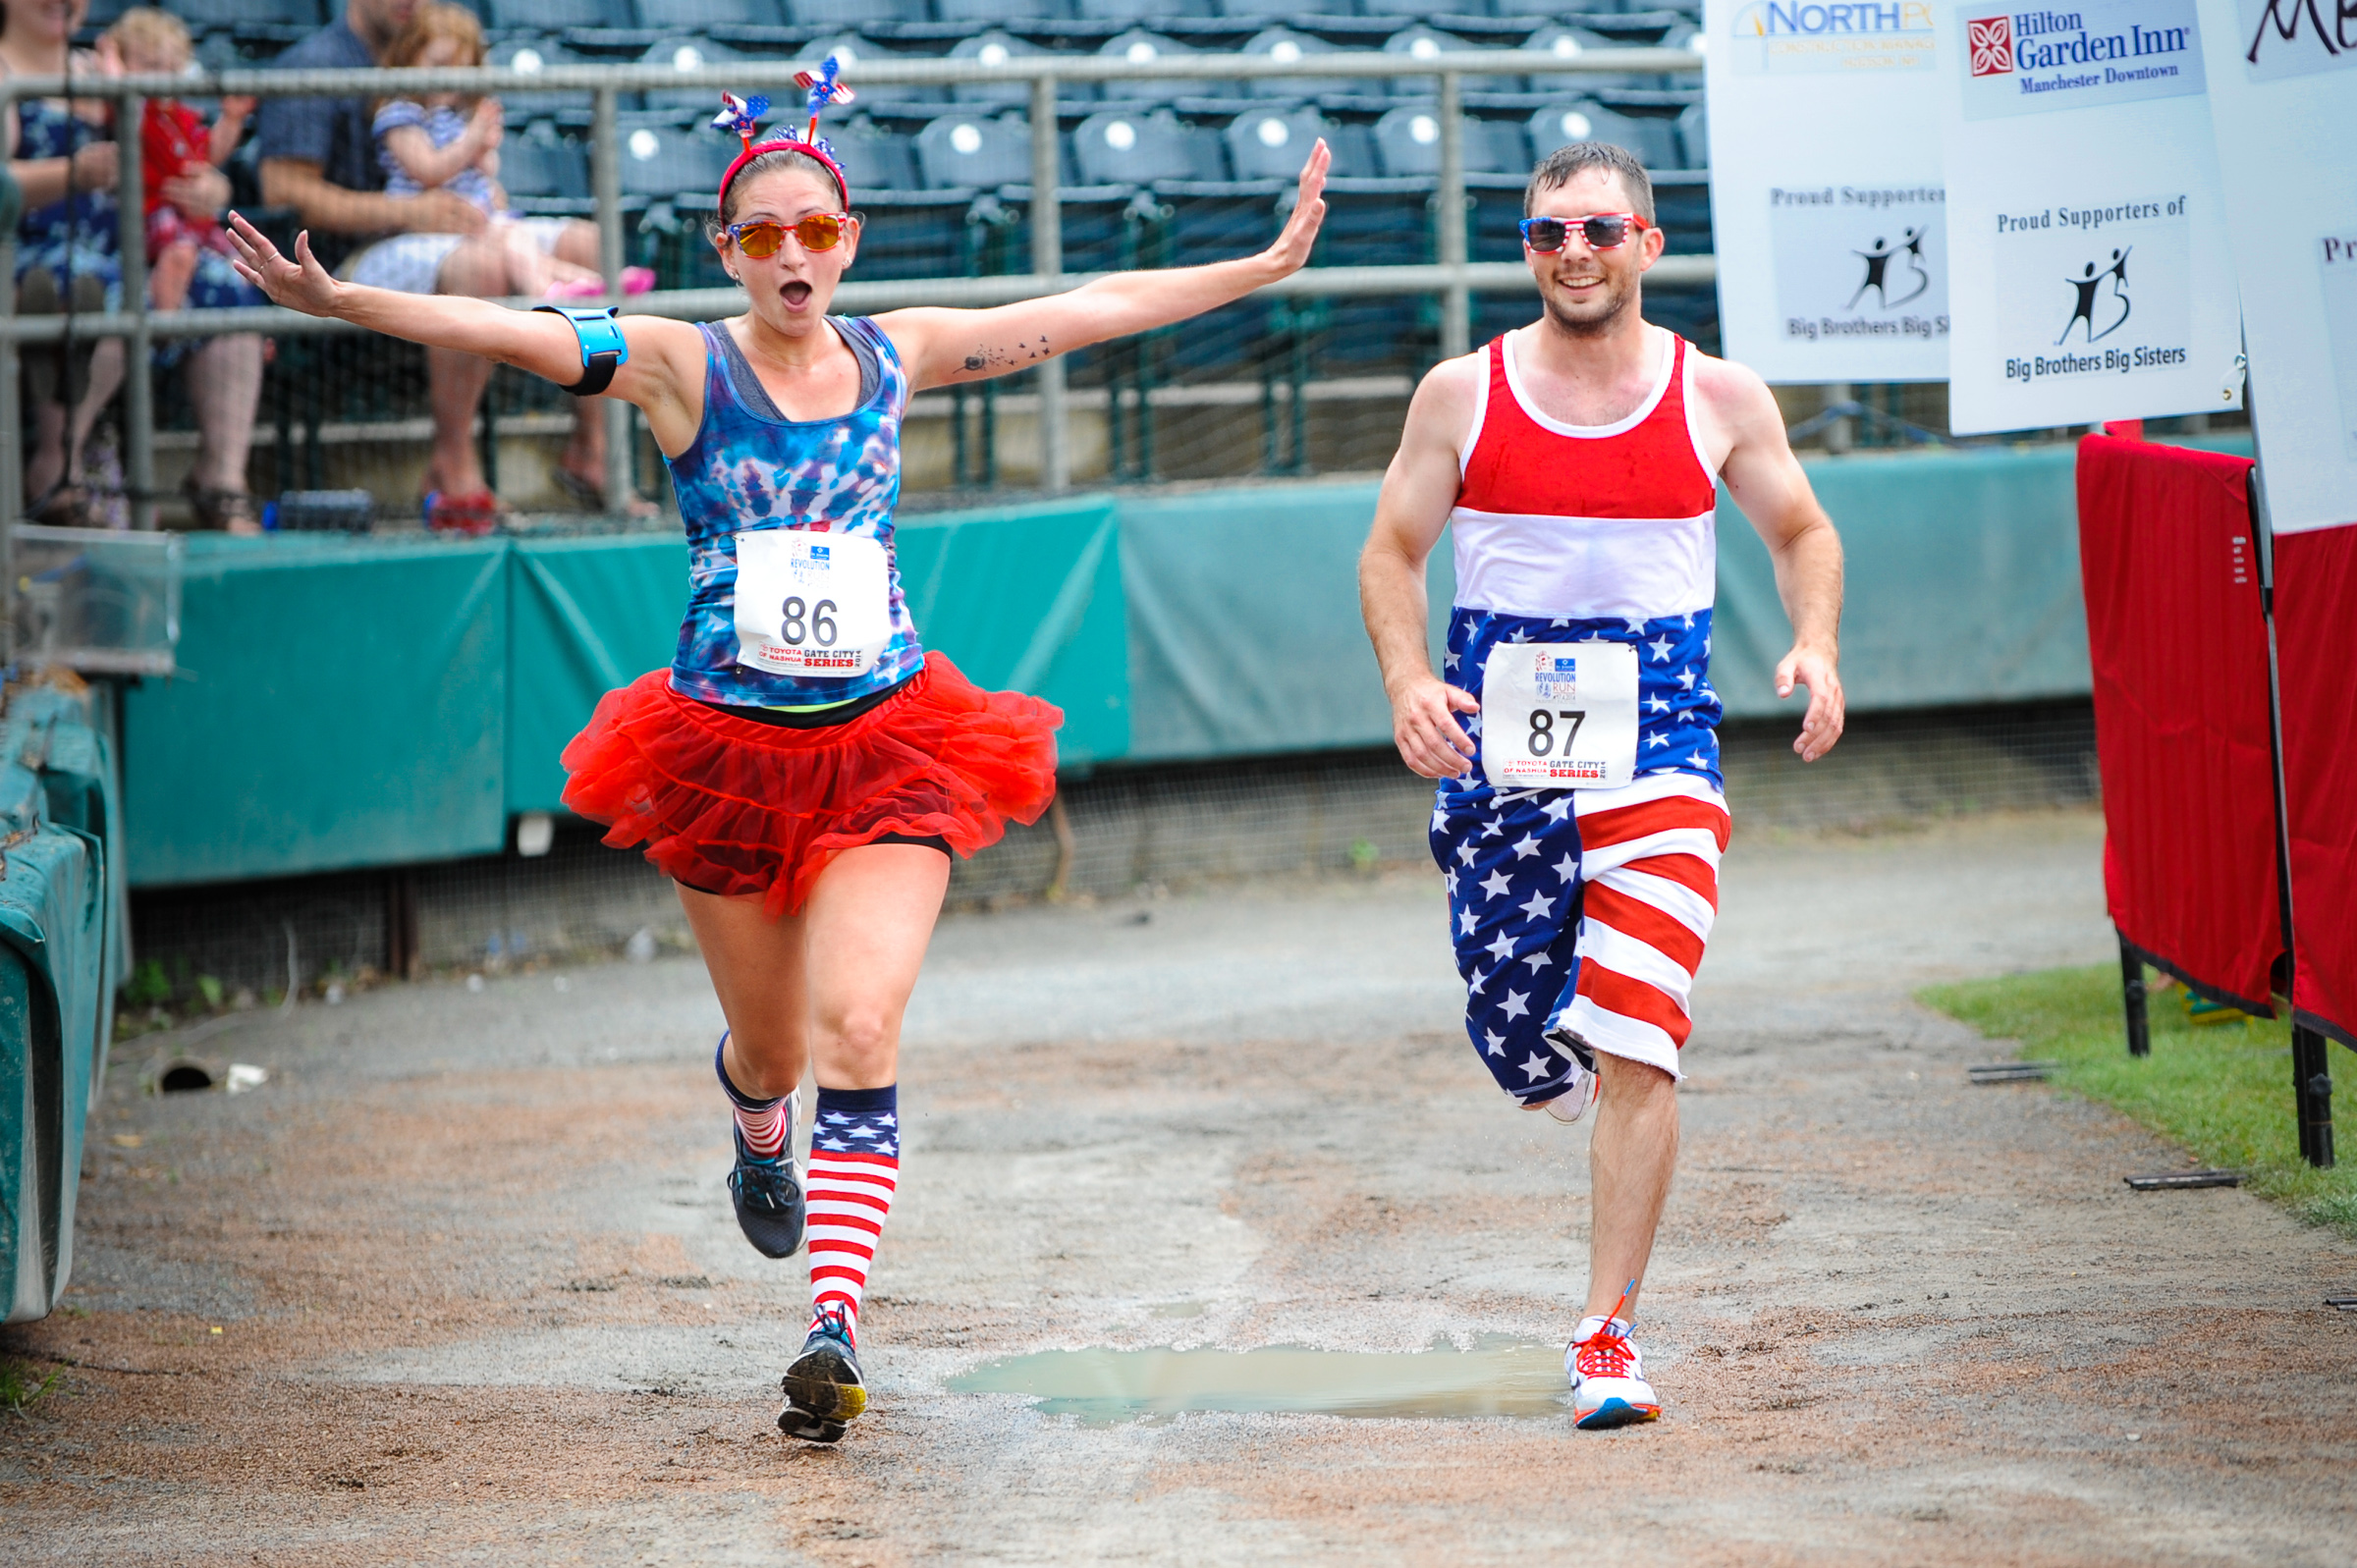 PHOTOS: Revolution Run 2014